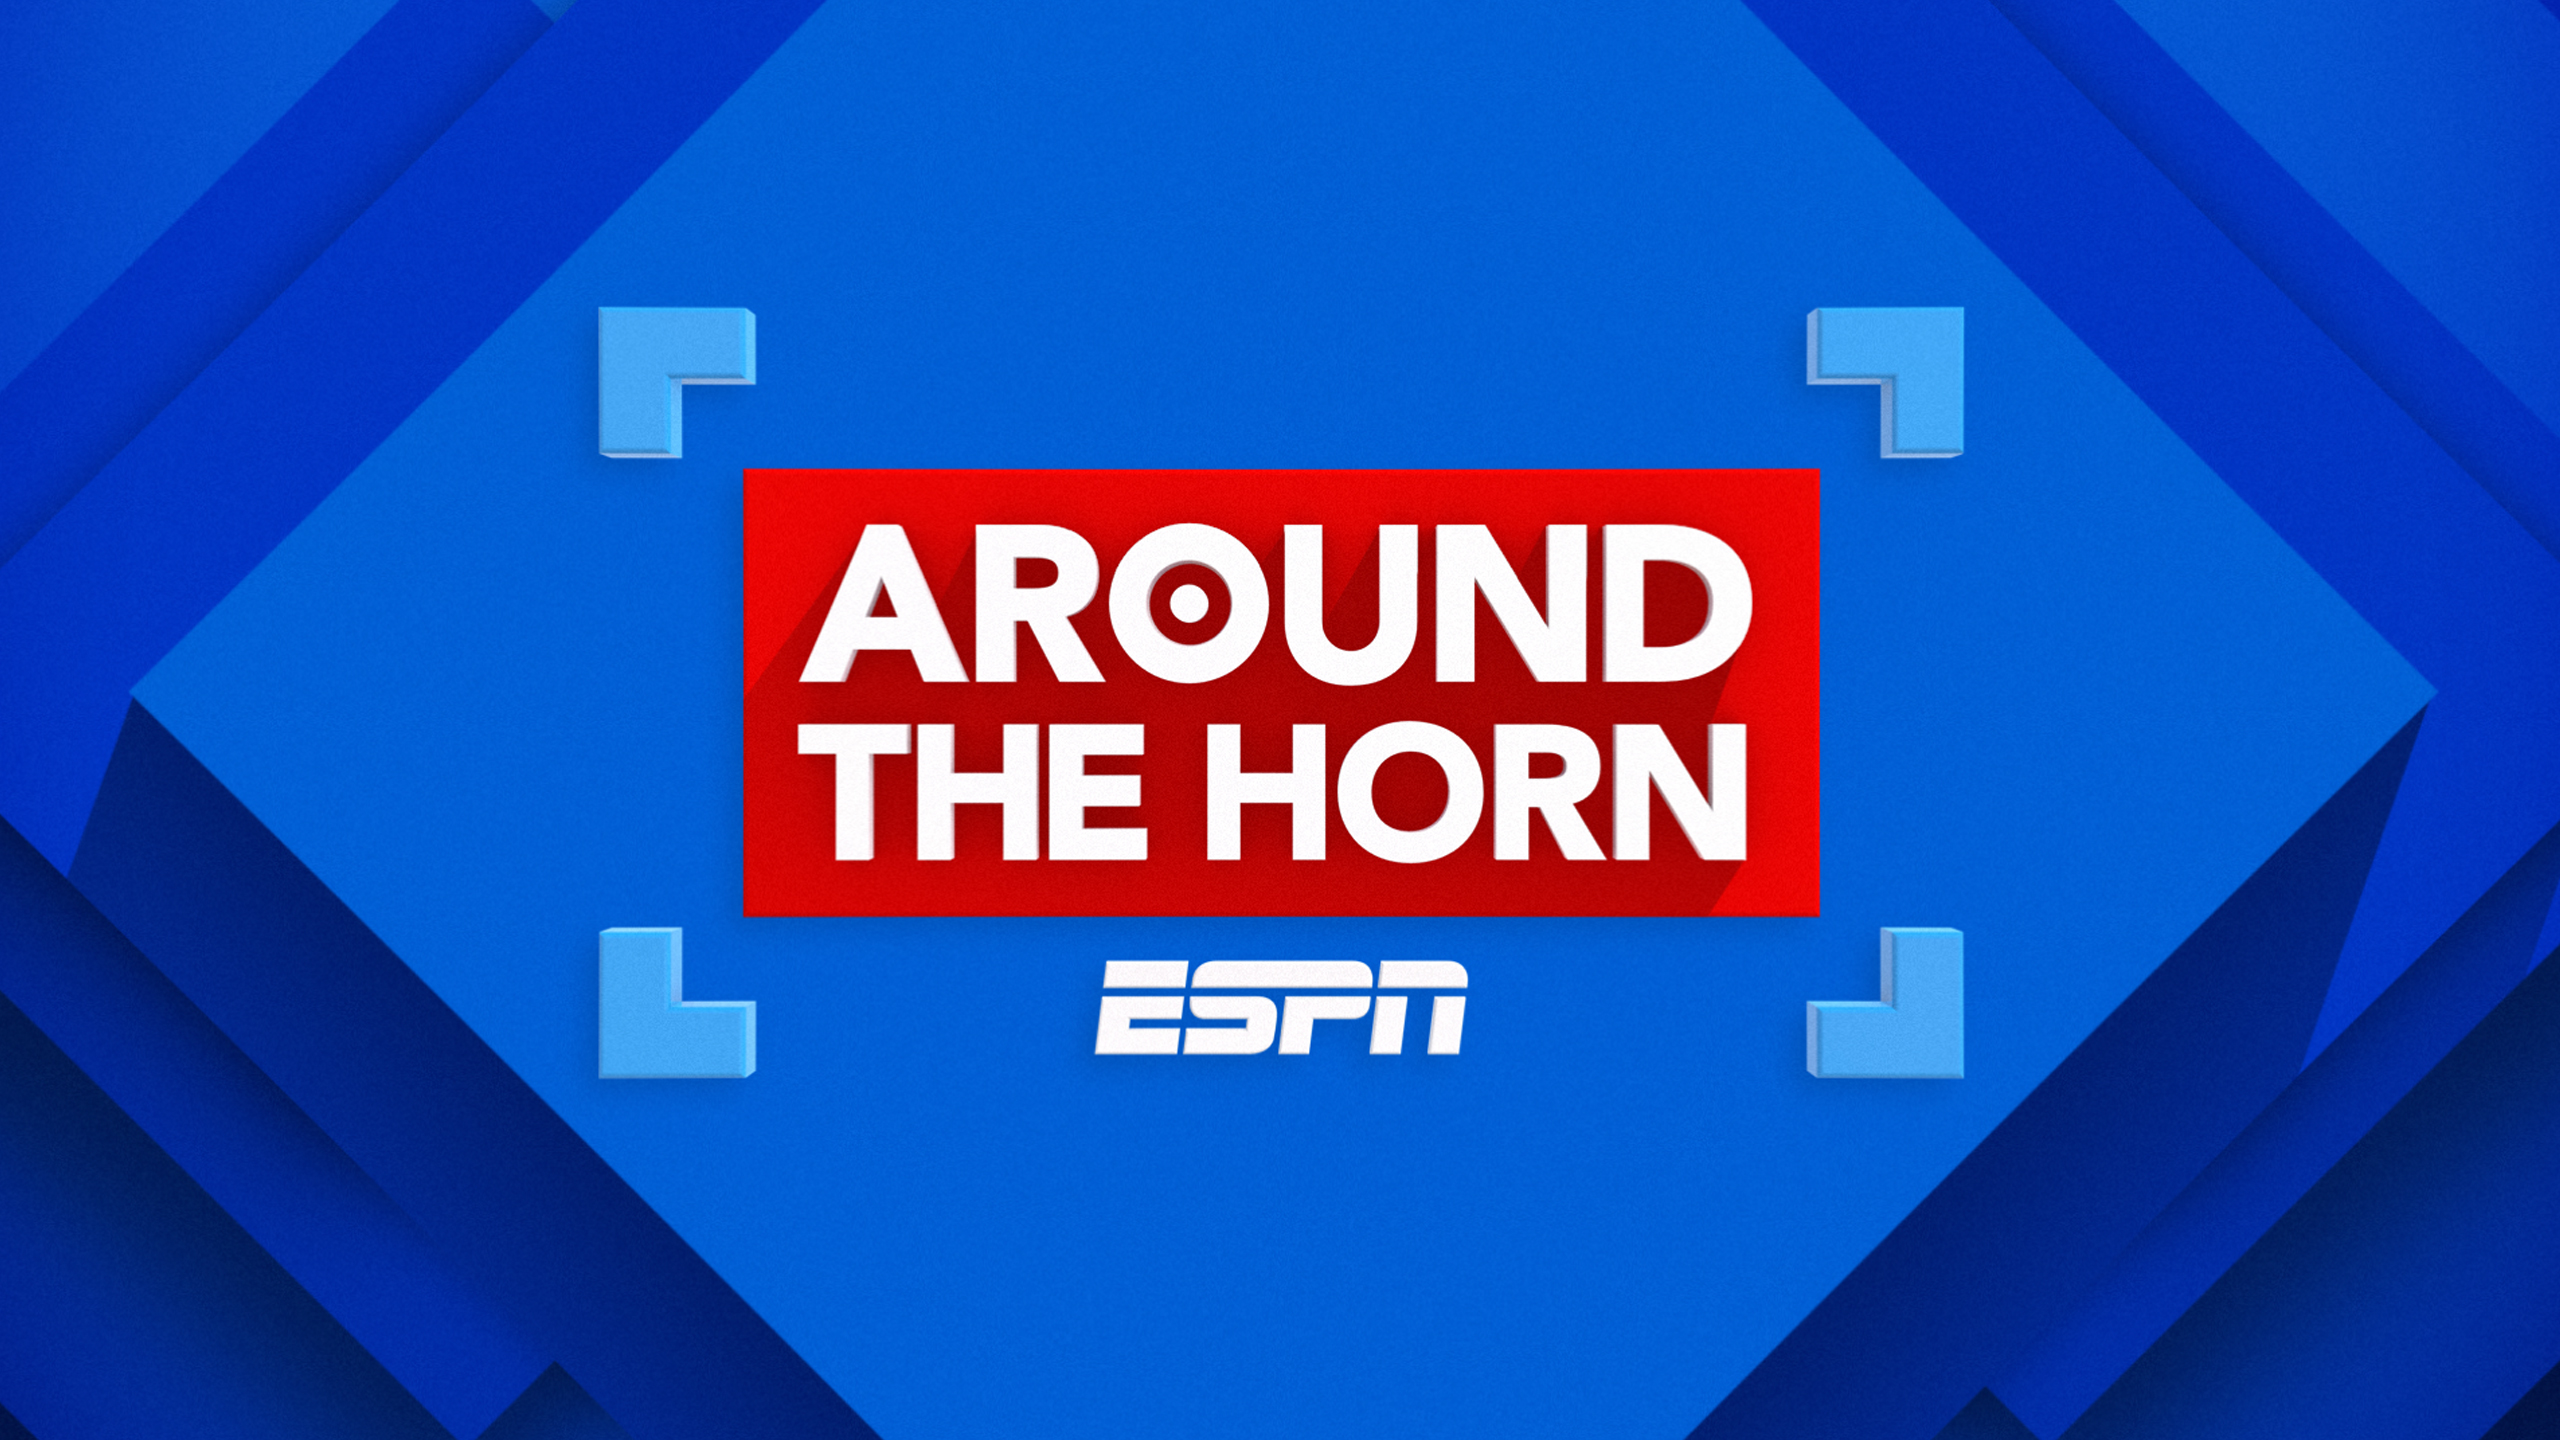 Wed, 12/12 - Around The Horn